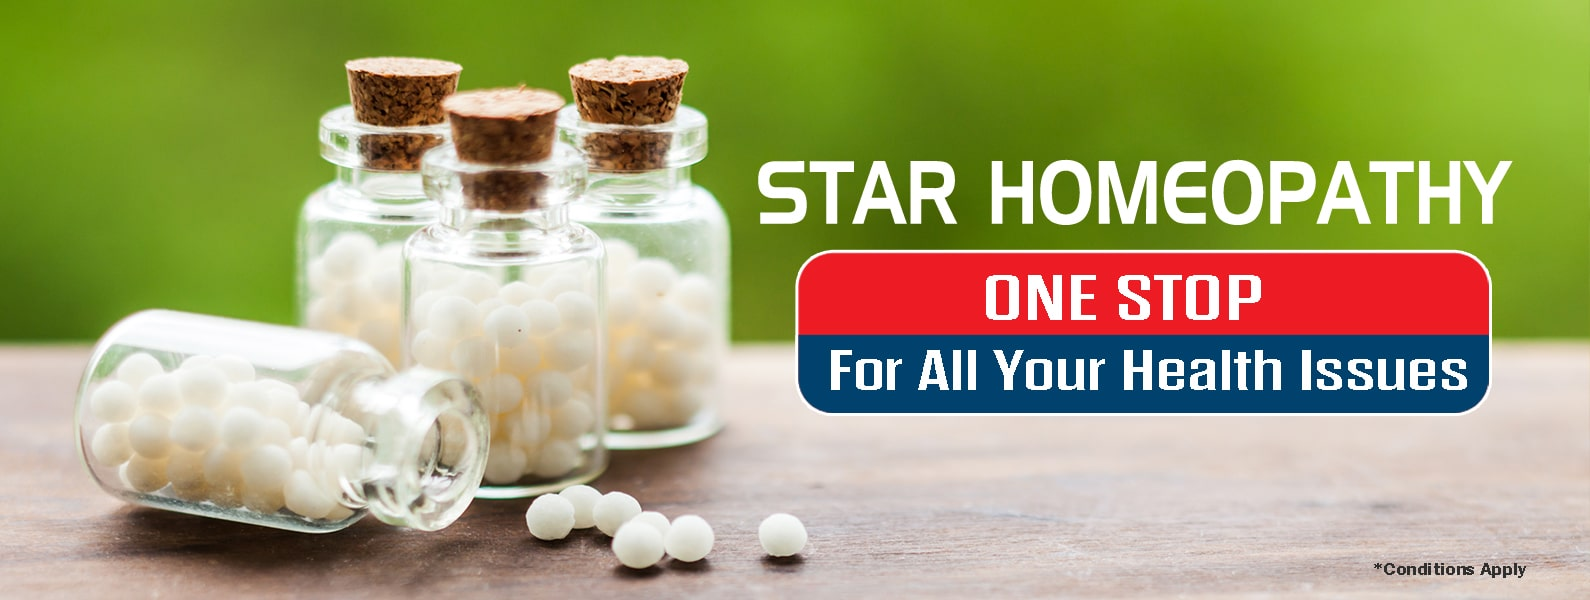 Best homeopathy Doctor in Vijayawada.